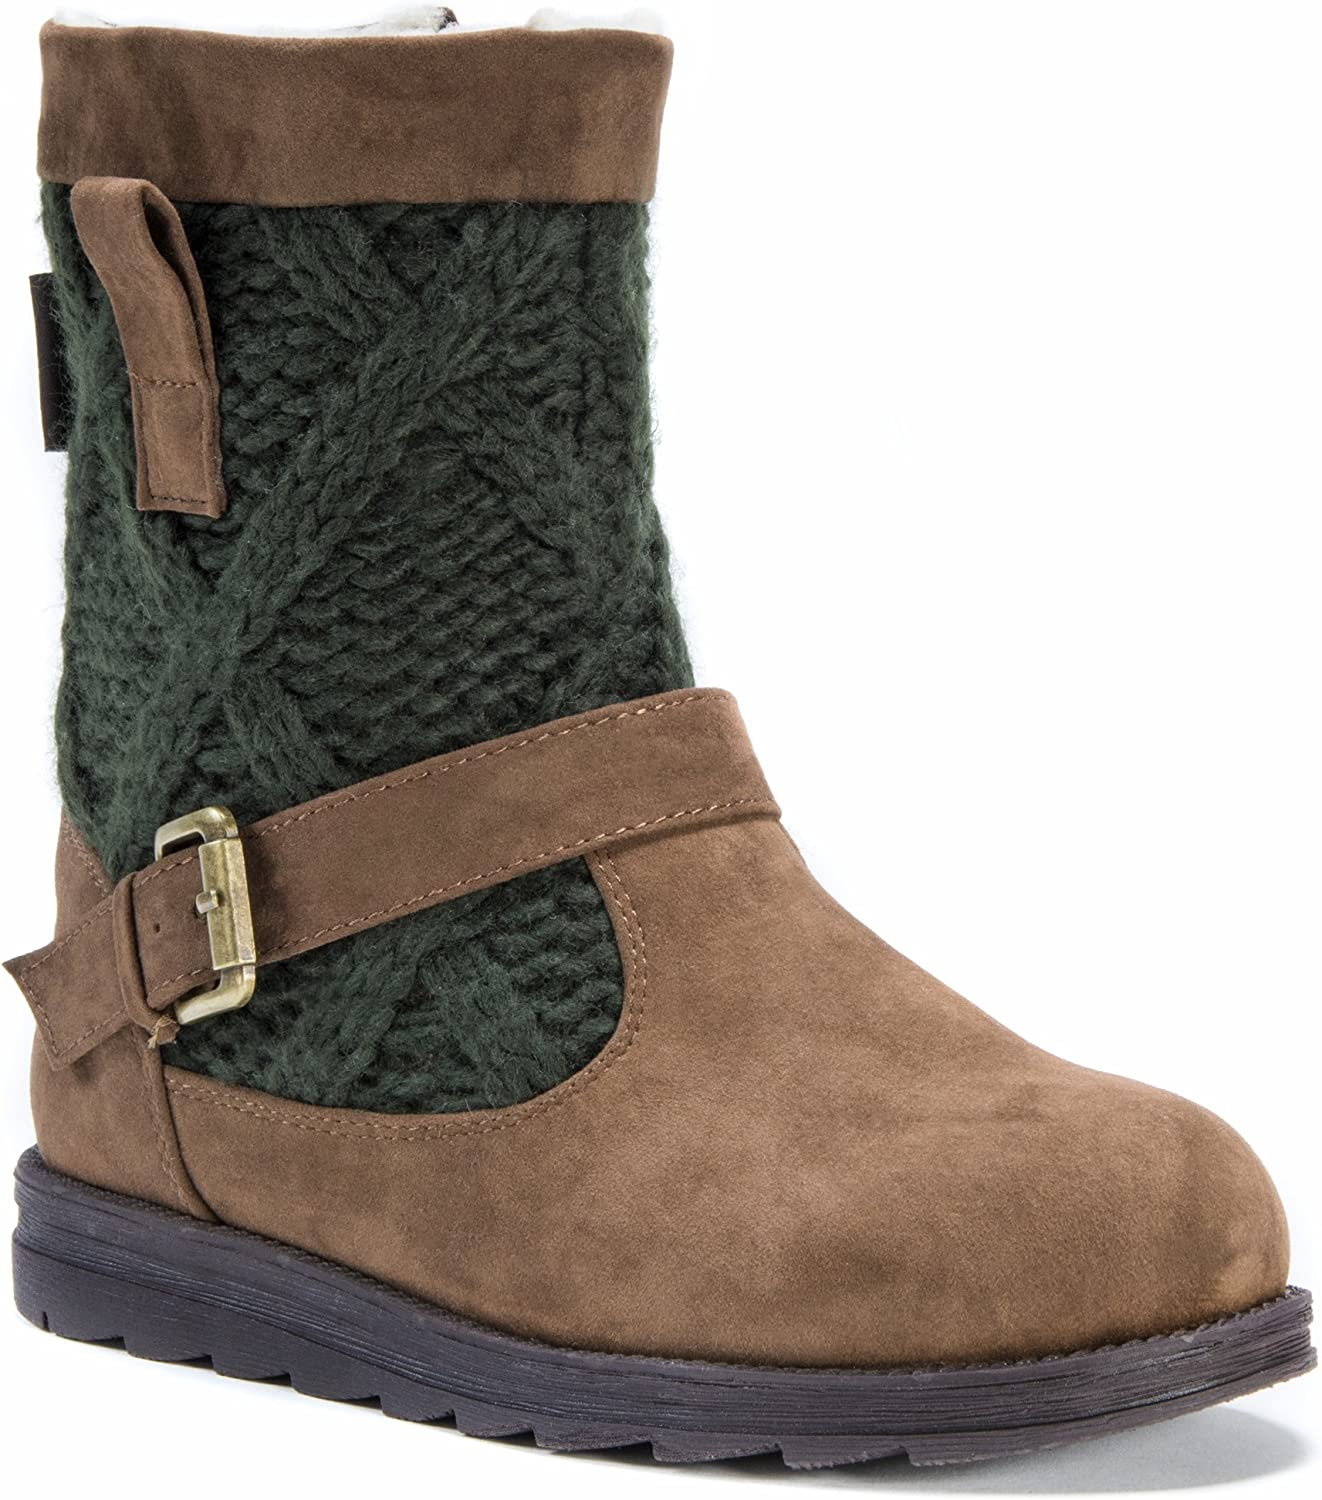 MUK LUKS Womens Women's Gina Boot Winter Boot